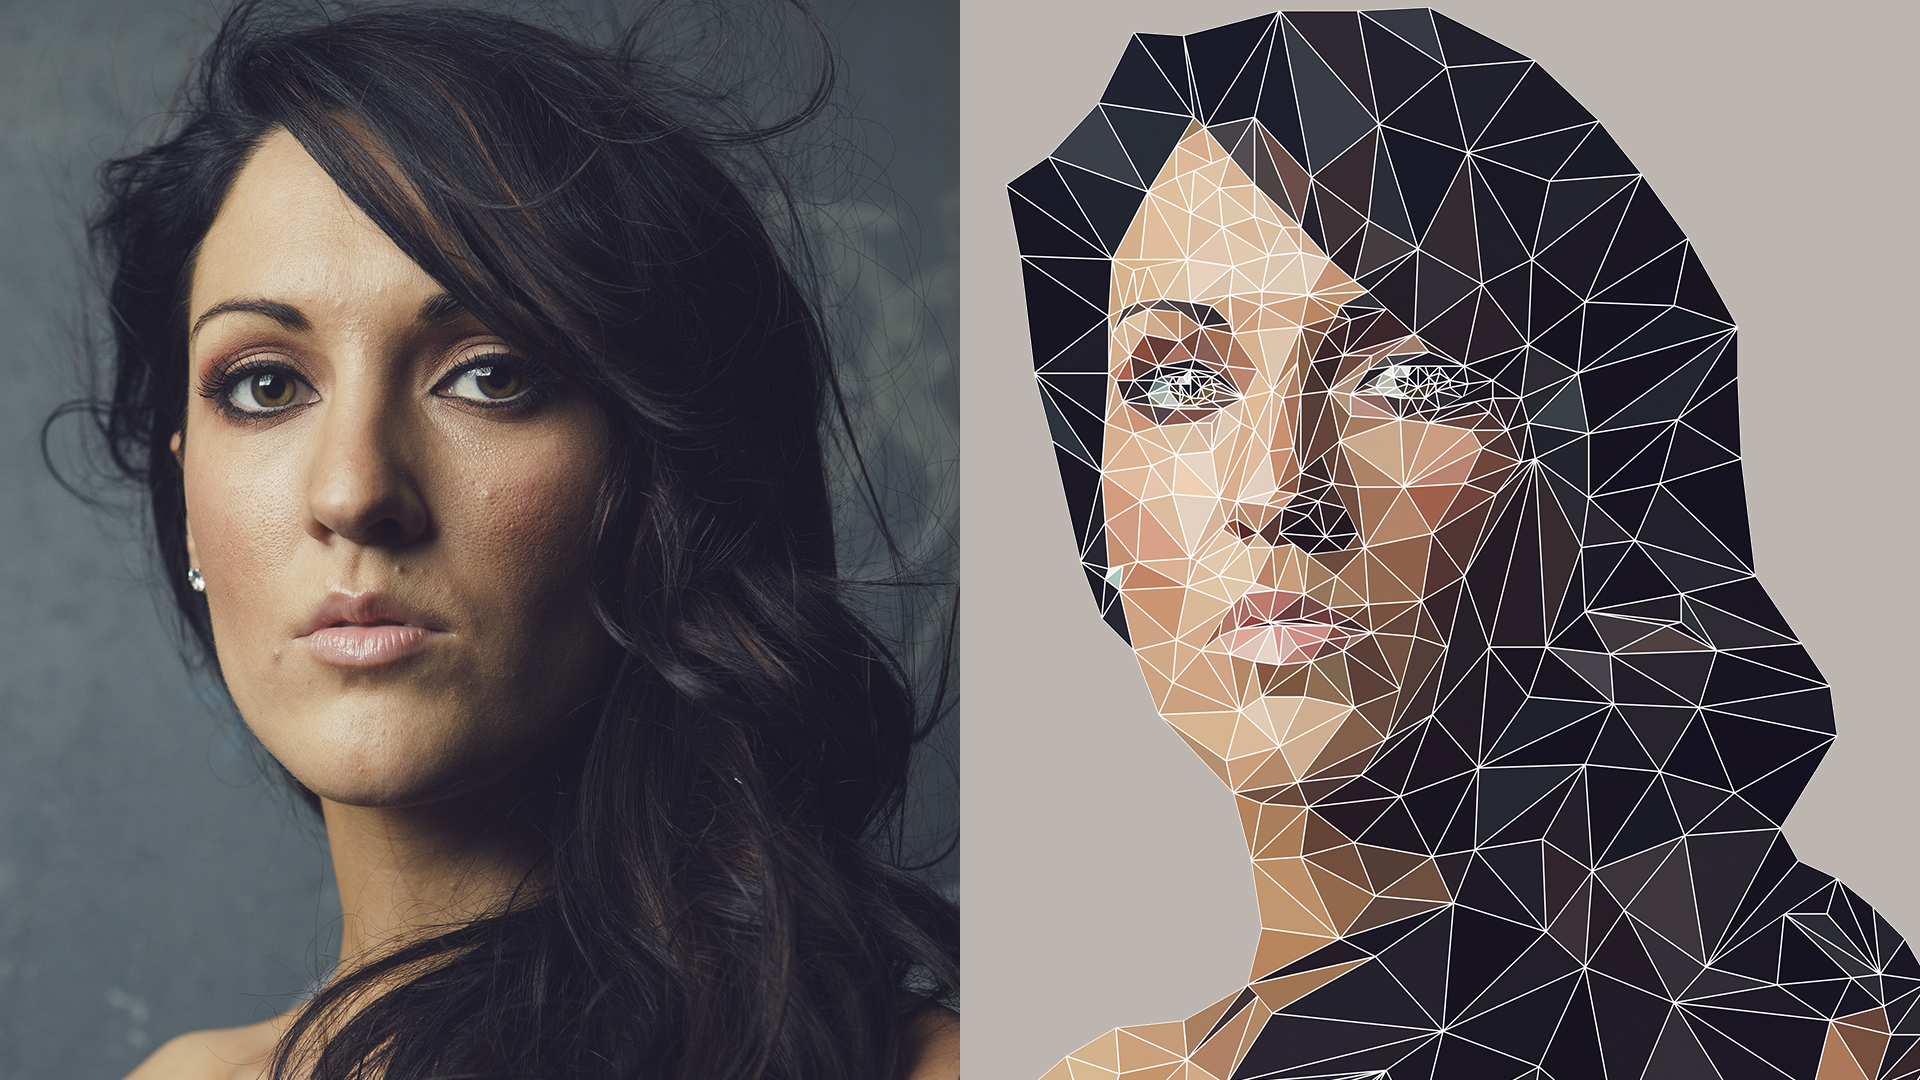 Parallax 3d Effect Wallpaper Pro Low Poly Geometric Effect In Photoshop Only